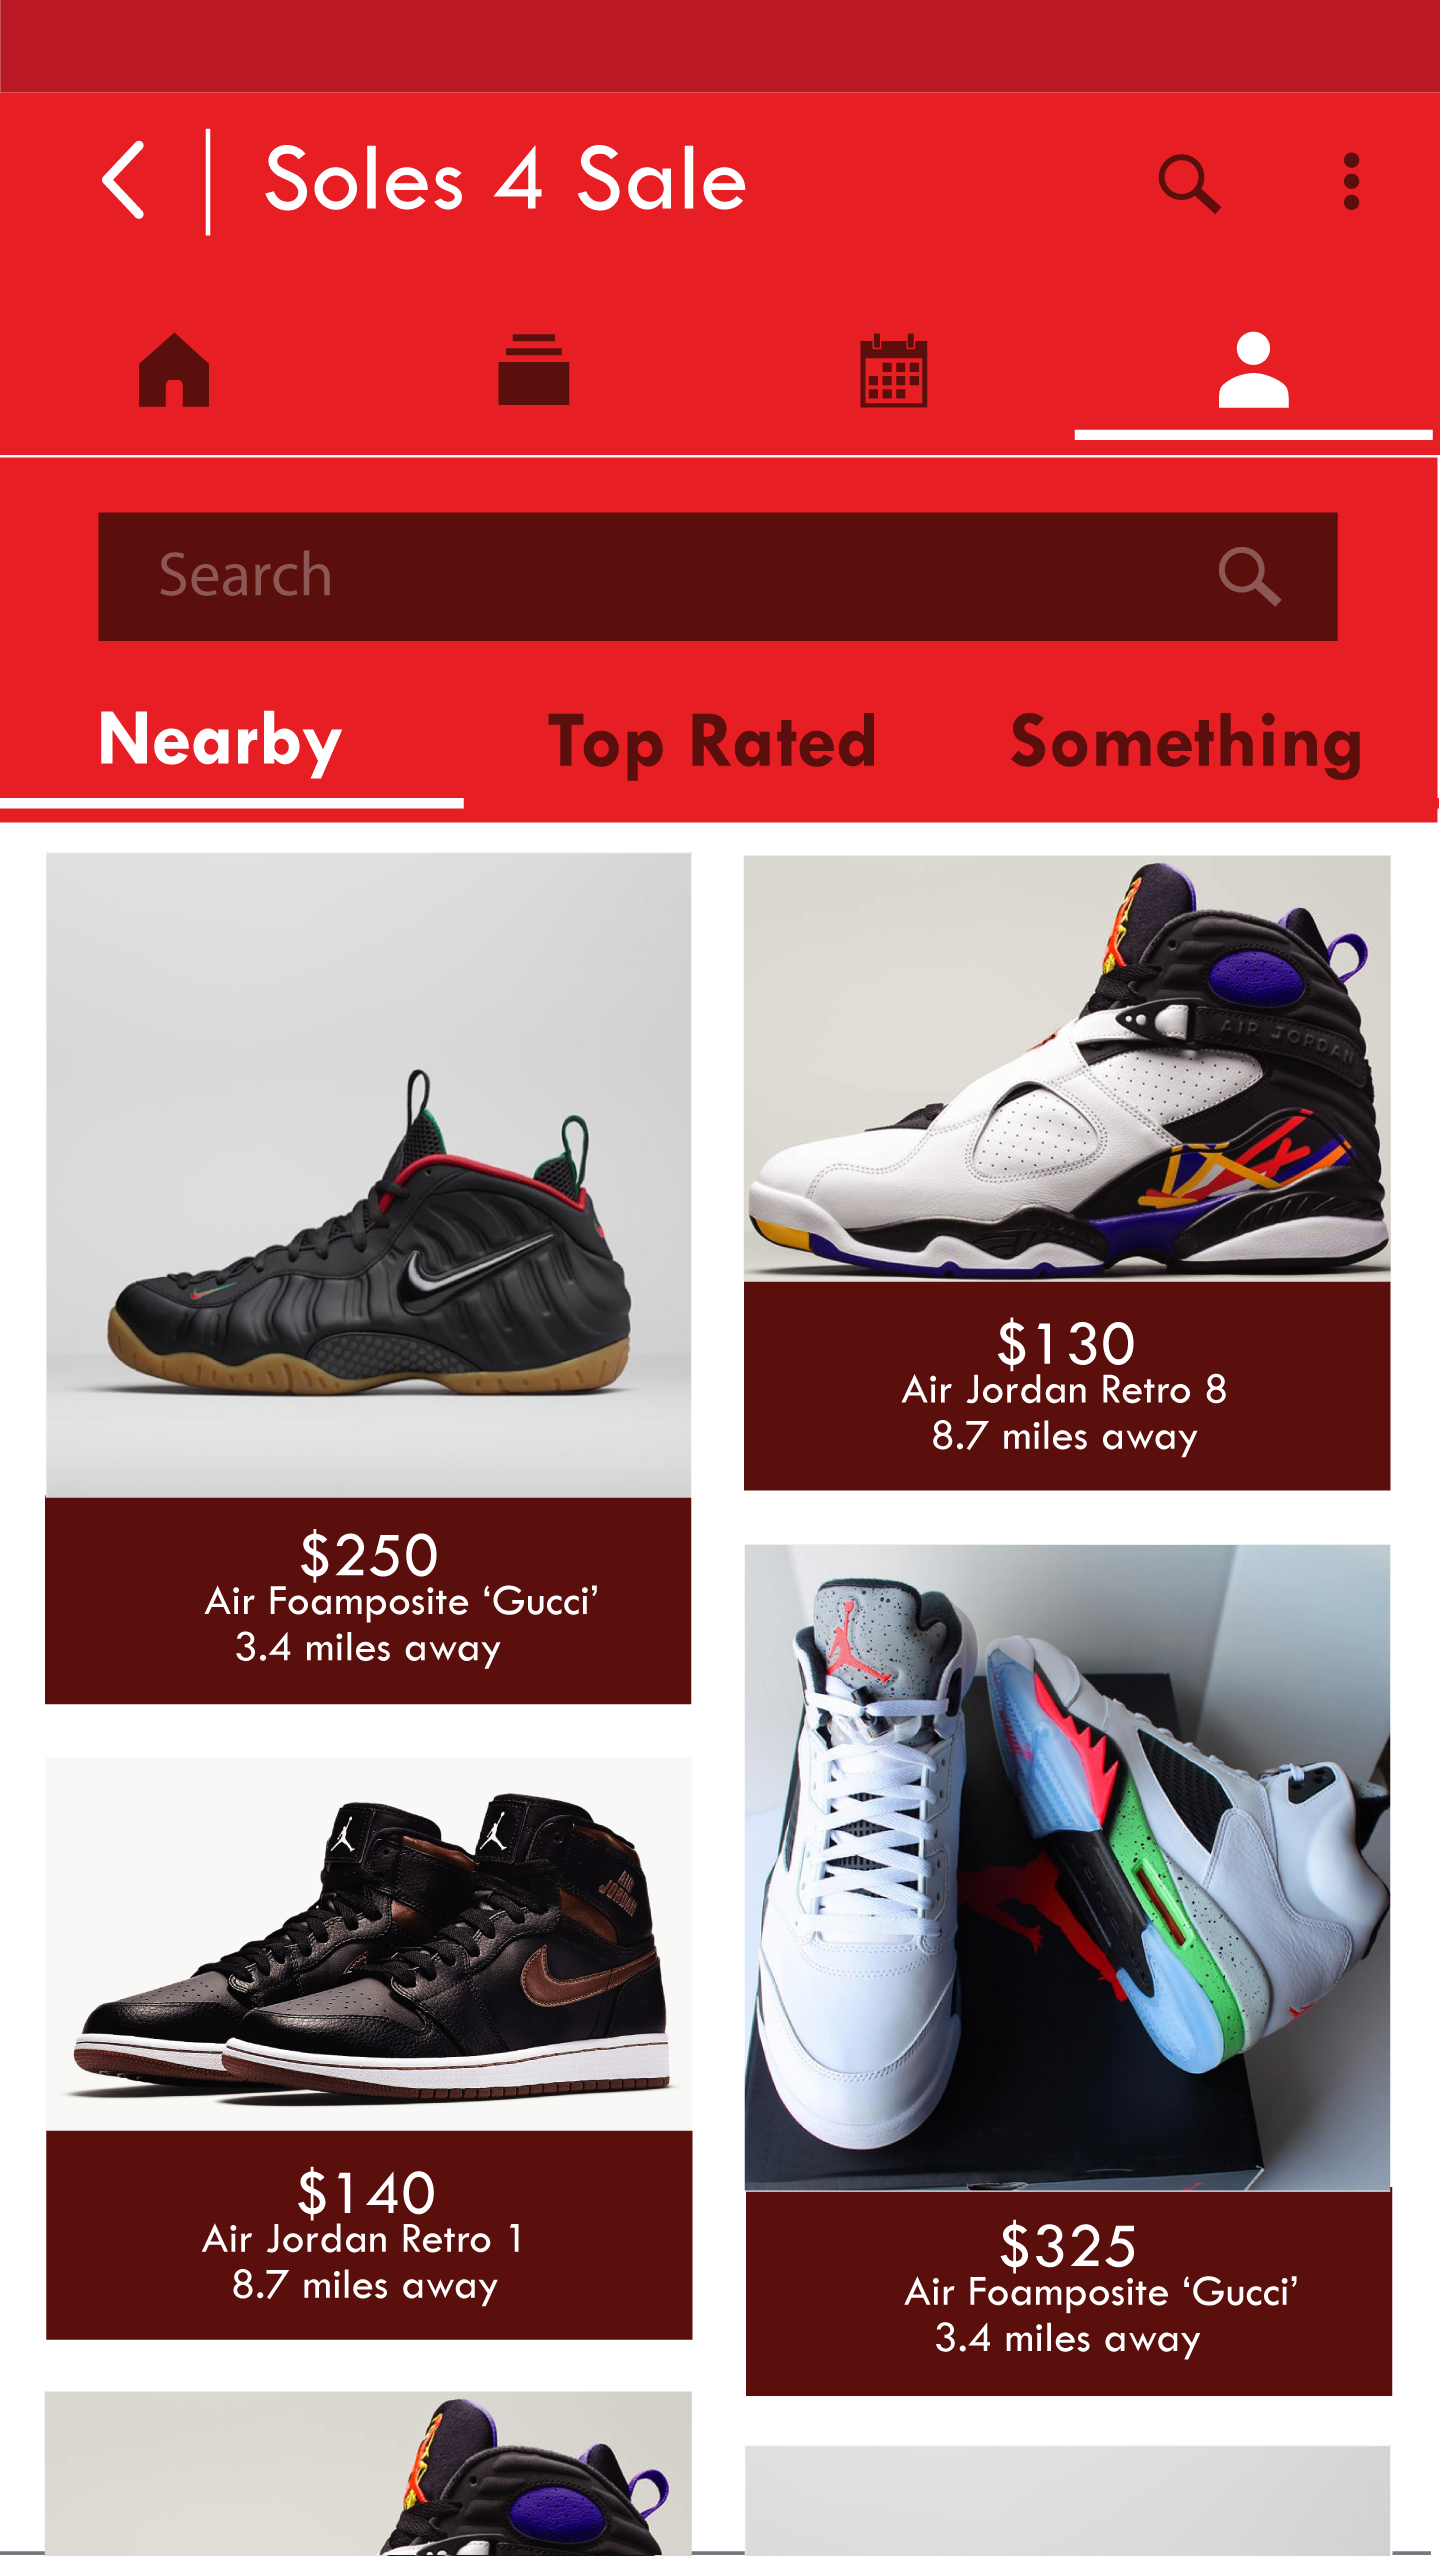 What-Are-Those-Profile-soles4sale-nearby.png